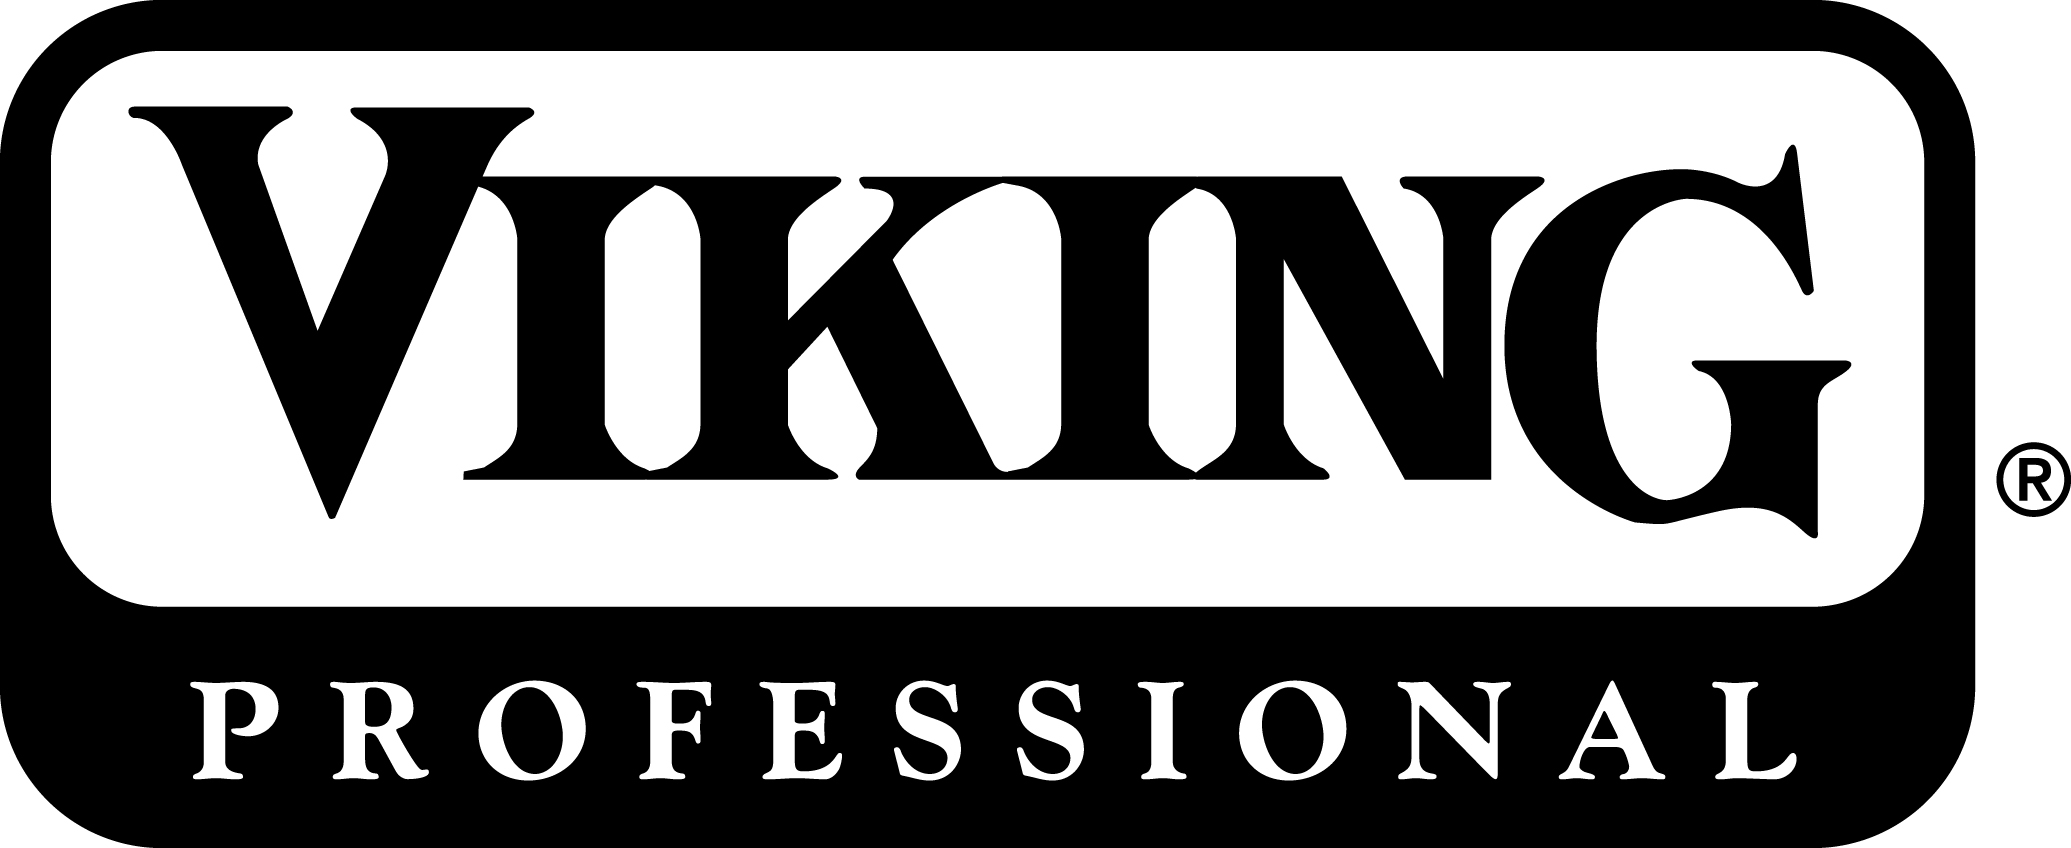 Viking Fridge Technician, Kenmore Fridge Repair